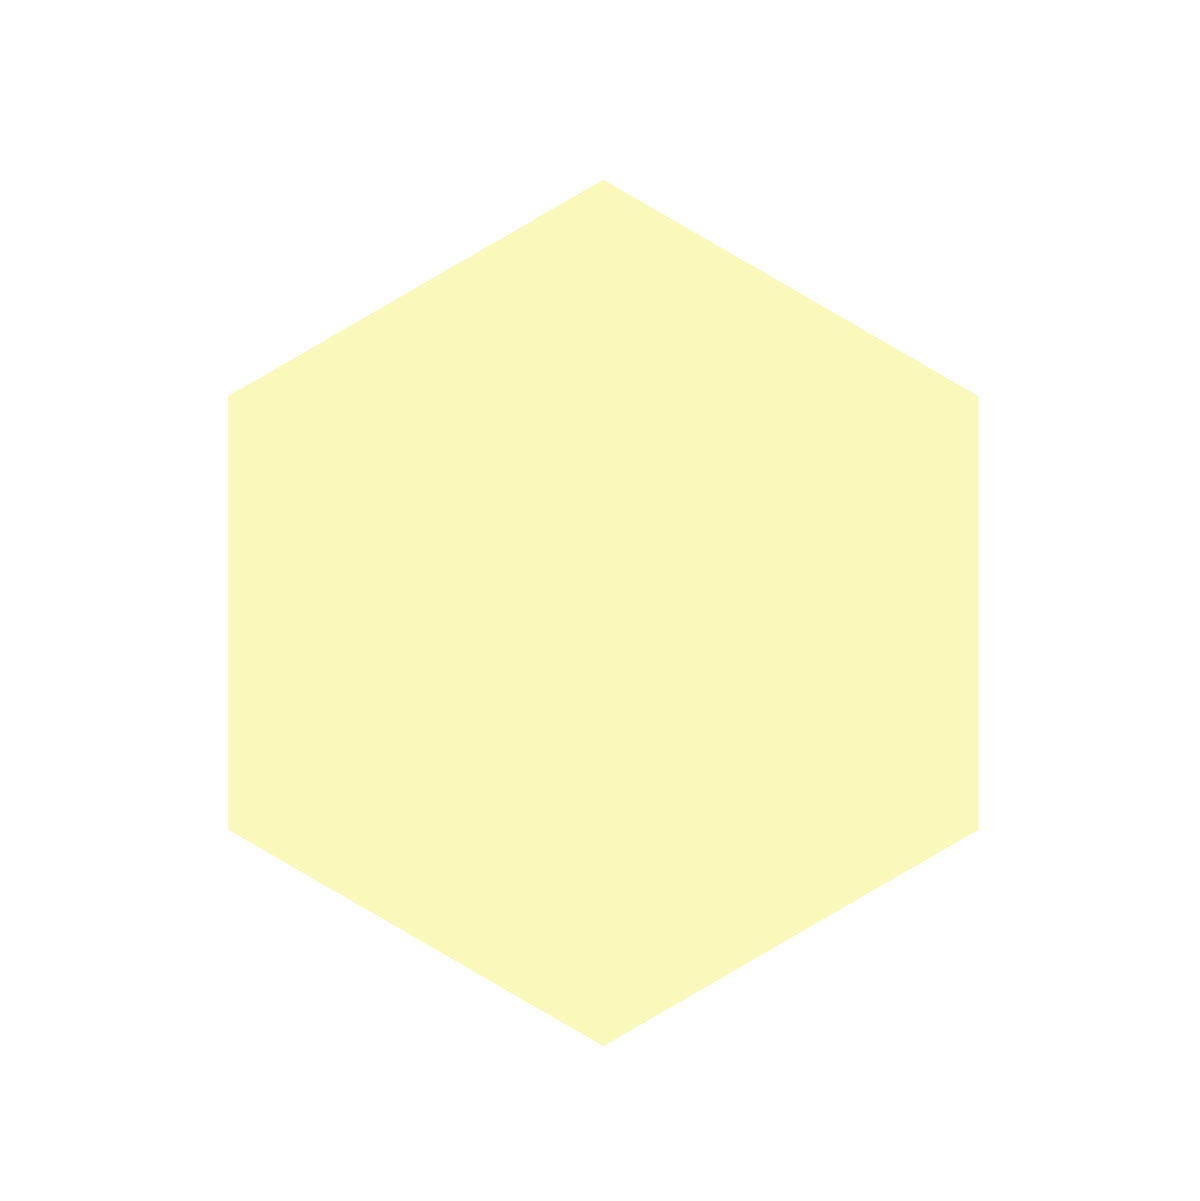 Polygon Image